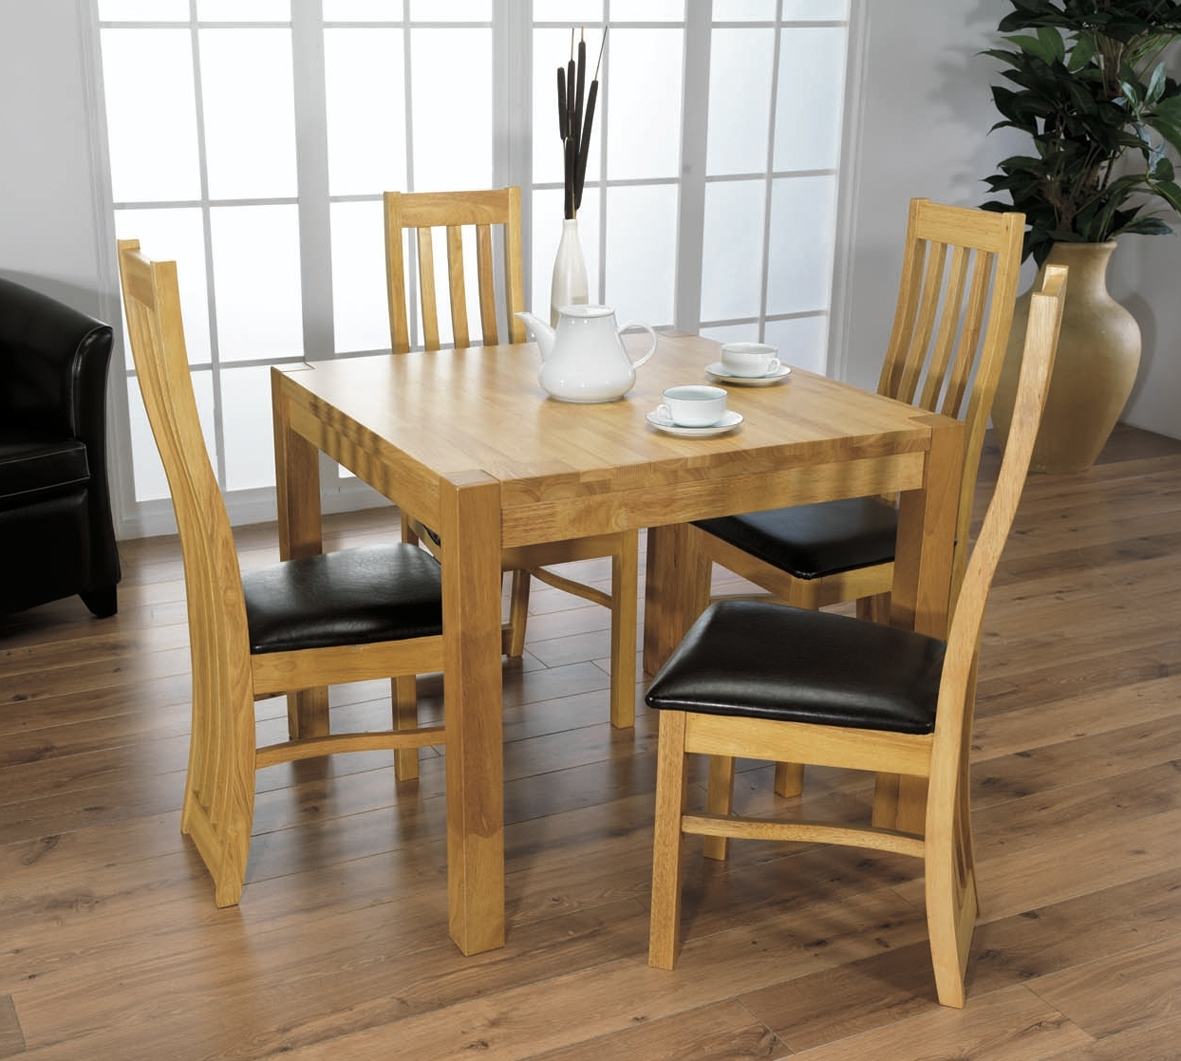 Why A Small Dining Table And Chairs Is A Premium Choice – Blogbeen Pertaining To 2018 Small Dining Sets (View 25 of 25)